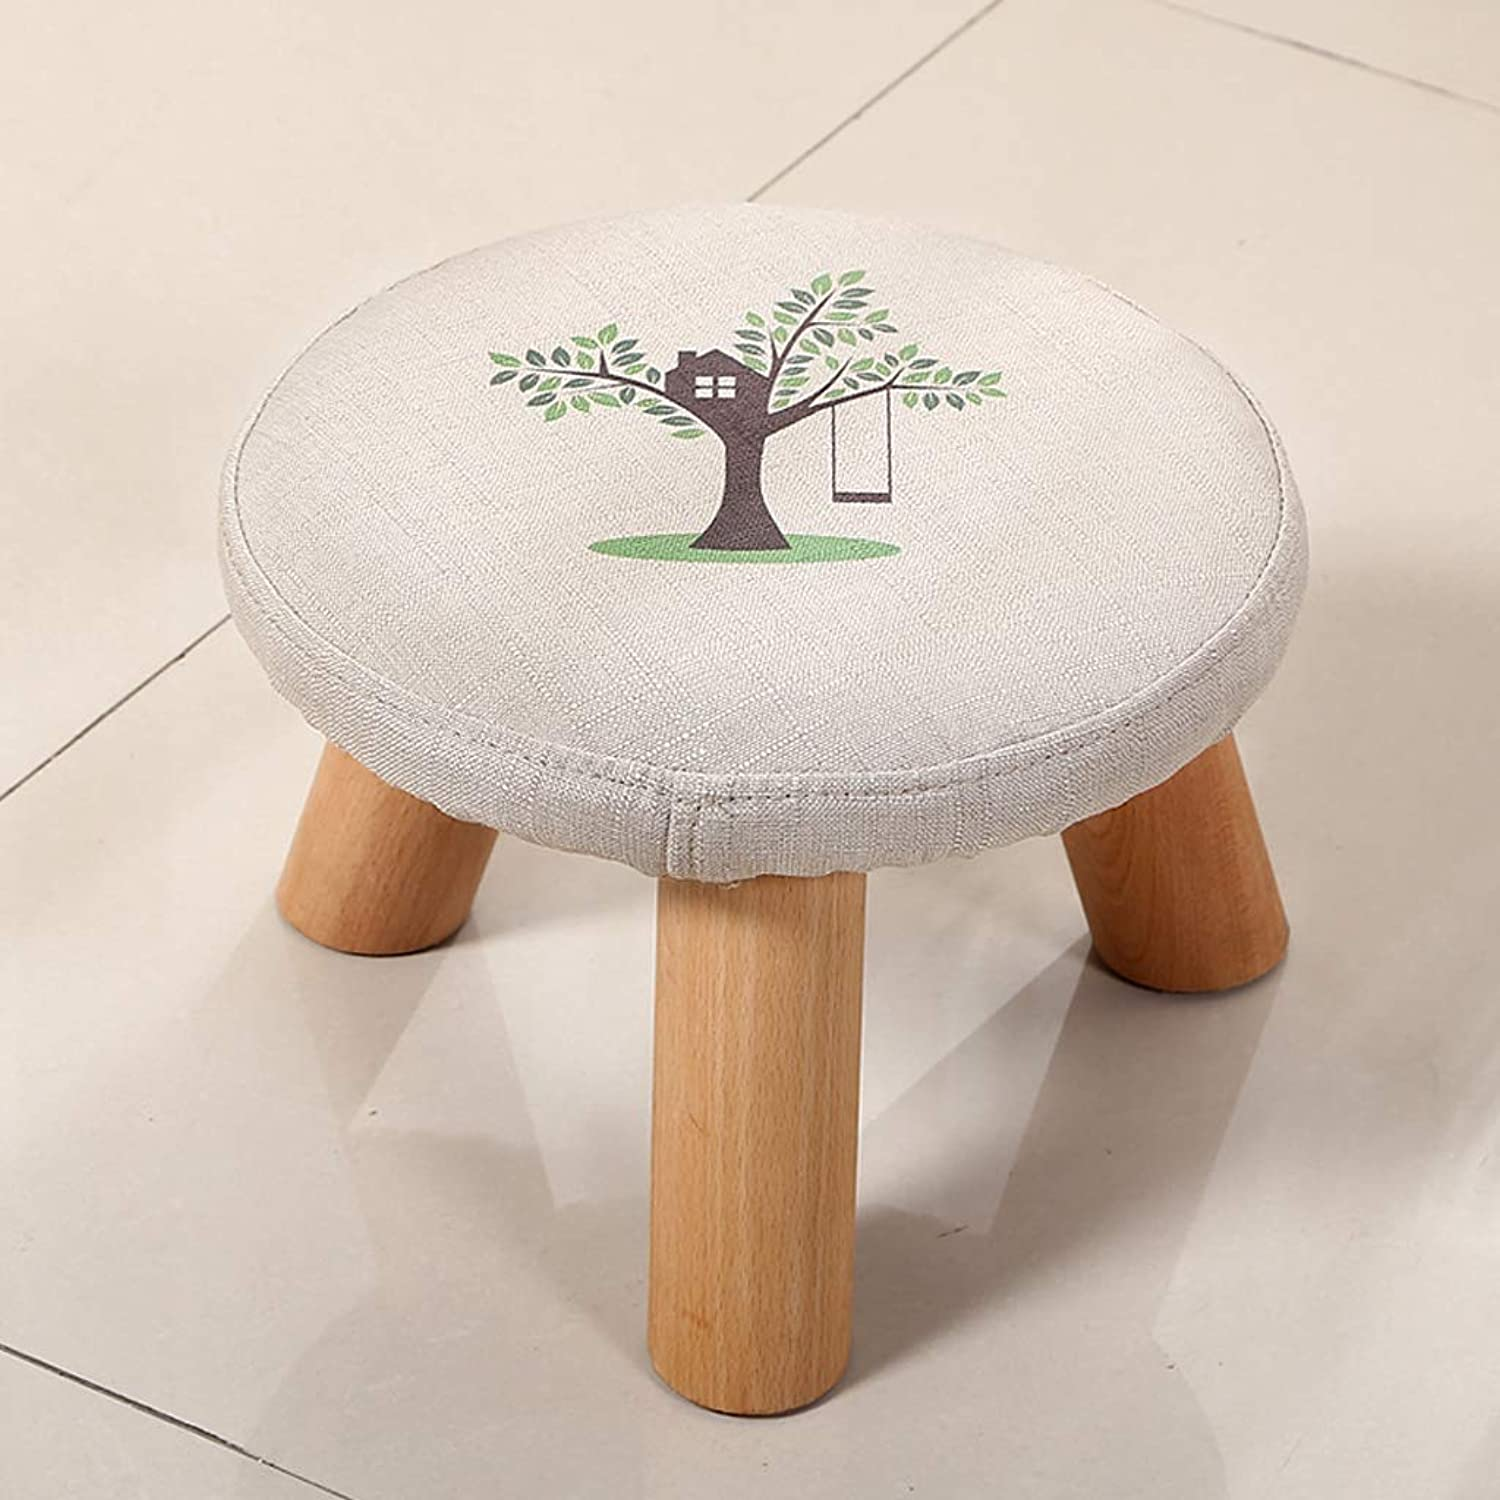 HLJ Personality Small Stool Simple Solid Wood Change shoes Stool Comfortable Fashion Small Bench